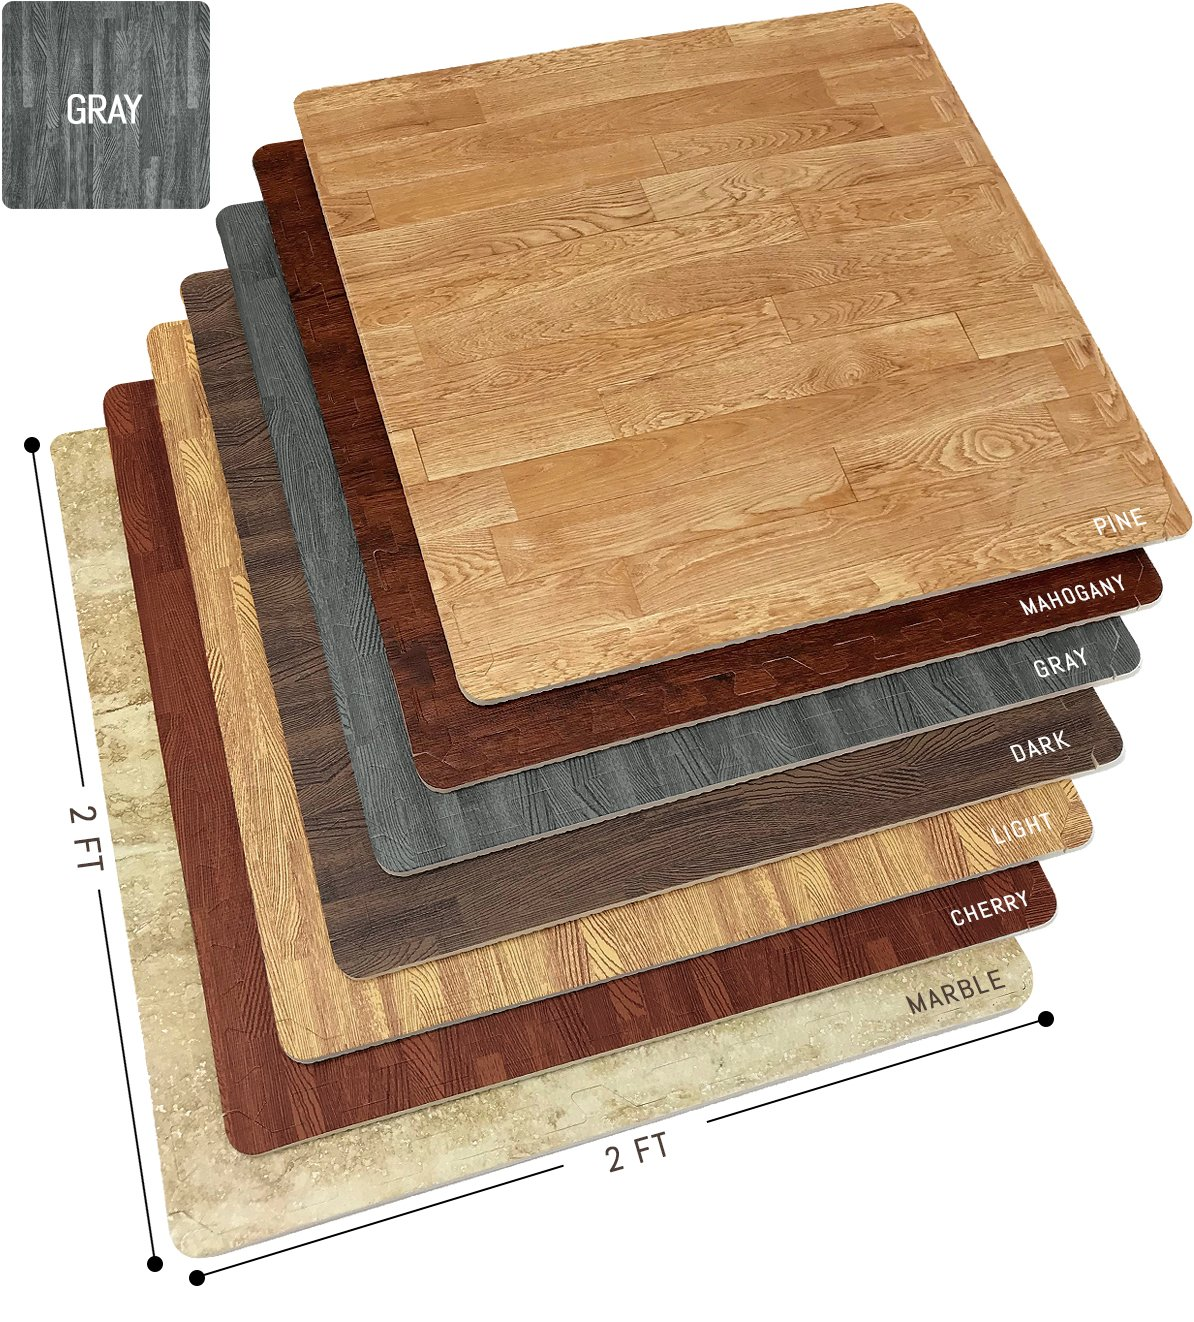 Sorbus Wood Floor Mats Foam Interlocking Wood Mats Each Tile 4 Square Feet 3/8-Inch Thick Puzzle Wood Tiles with Borders - for Home Office Playroom Basement (4 Tiles 16 Sq ft, Wood Grain - Gray)